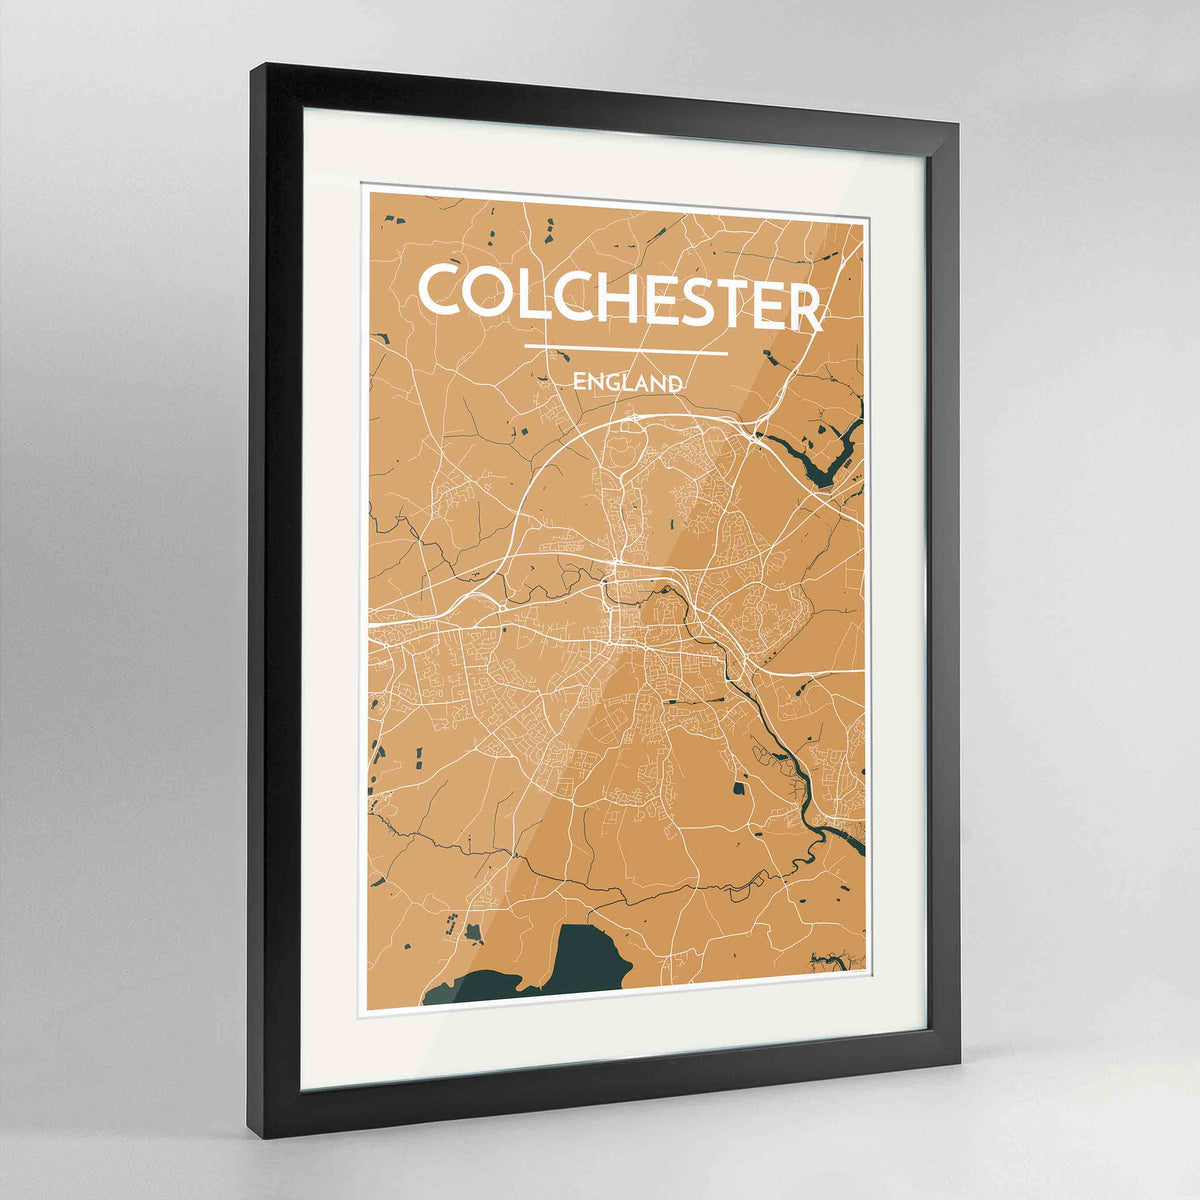 "Framed Colchester Map Art Print 24x36"" Contemporary Black frame Point Two Design Group"